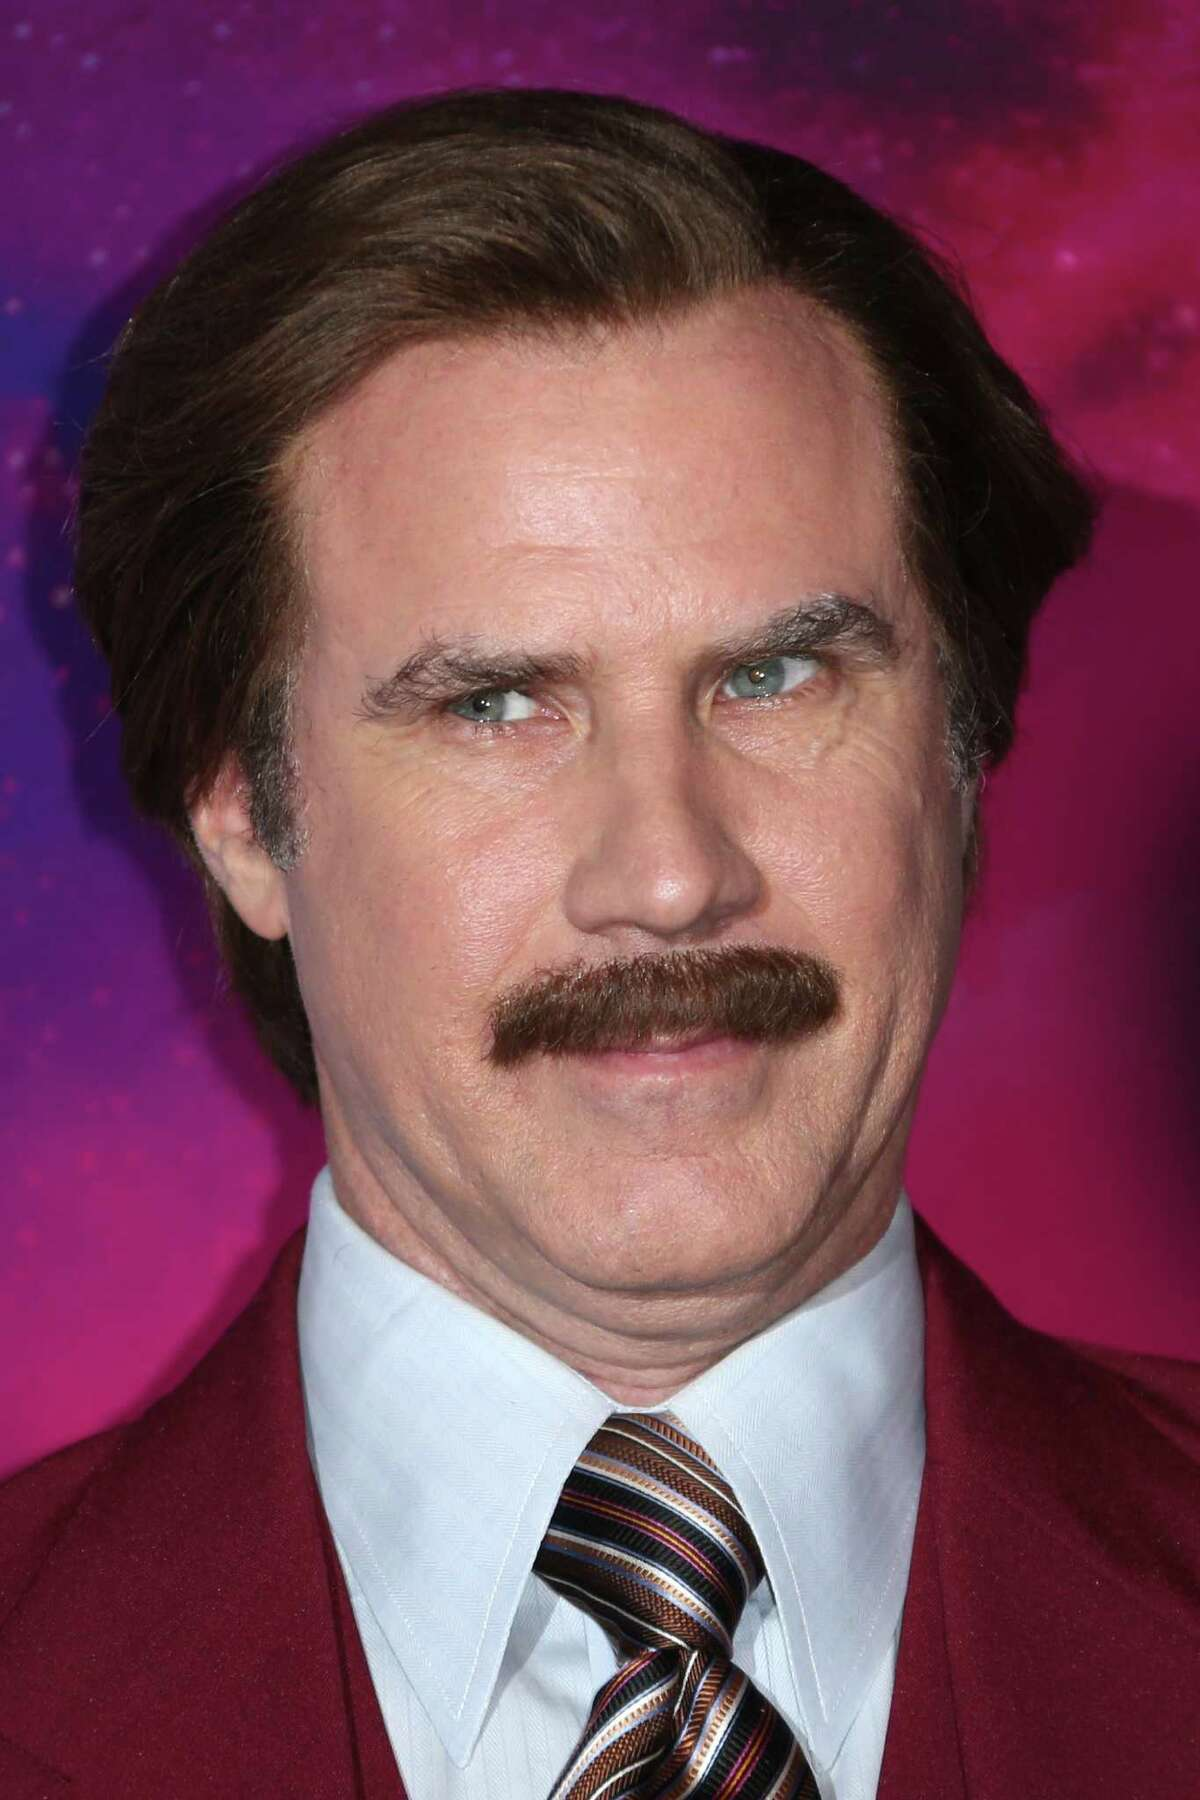 Supporters of hydraulic fracturing are using Will Ferrell's Ancorhman film character Ron Burgundy on a new website intended to get a foothold in social media now dominated by fracturing opponents. (Photo by Joel Ryan/Invision/AP)